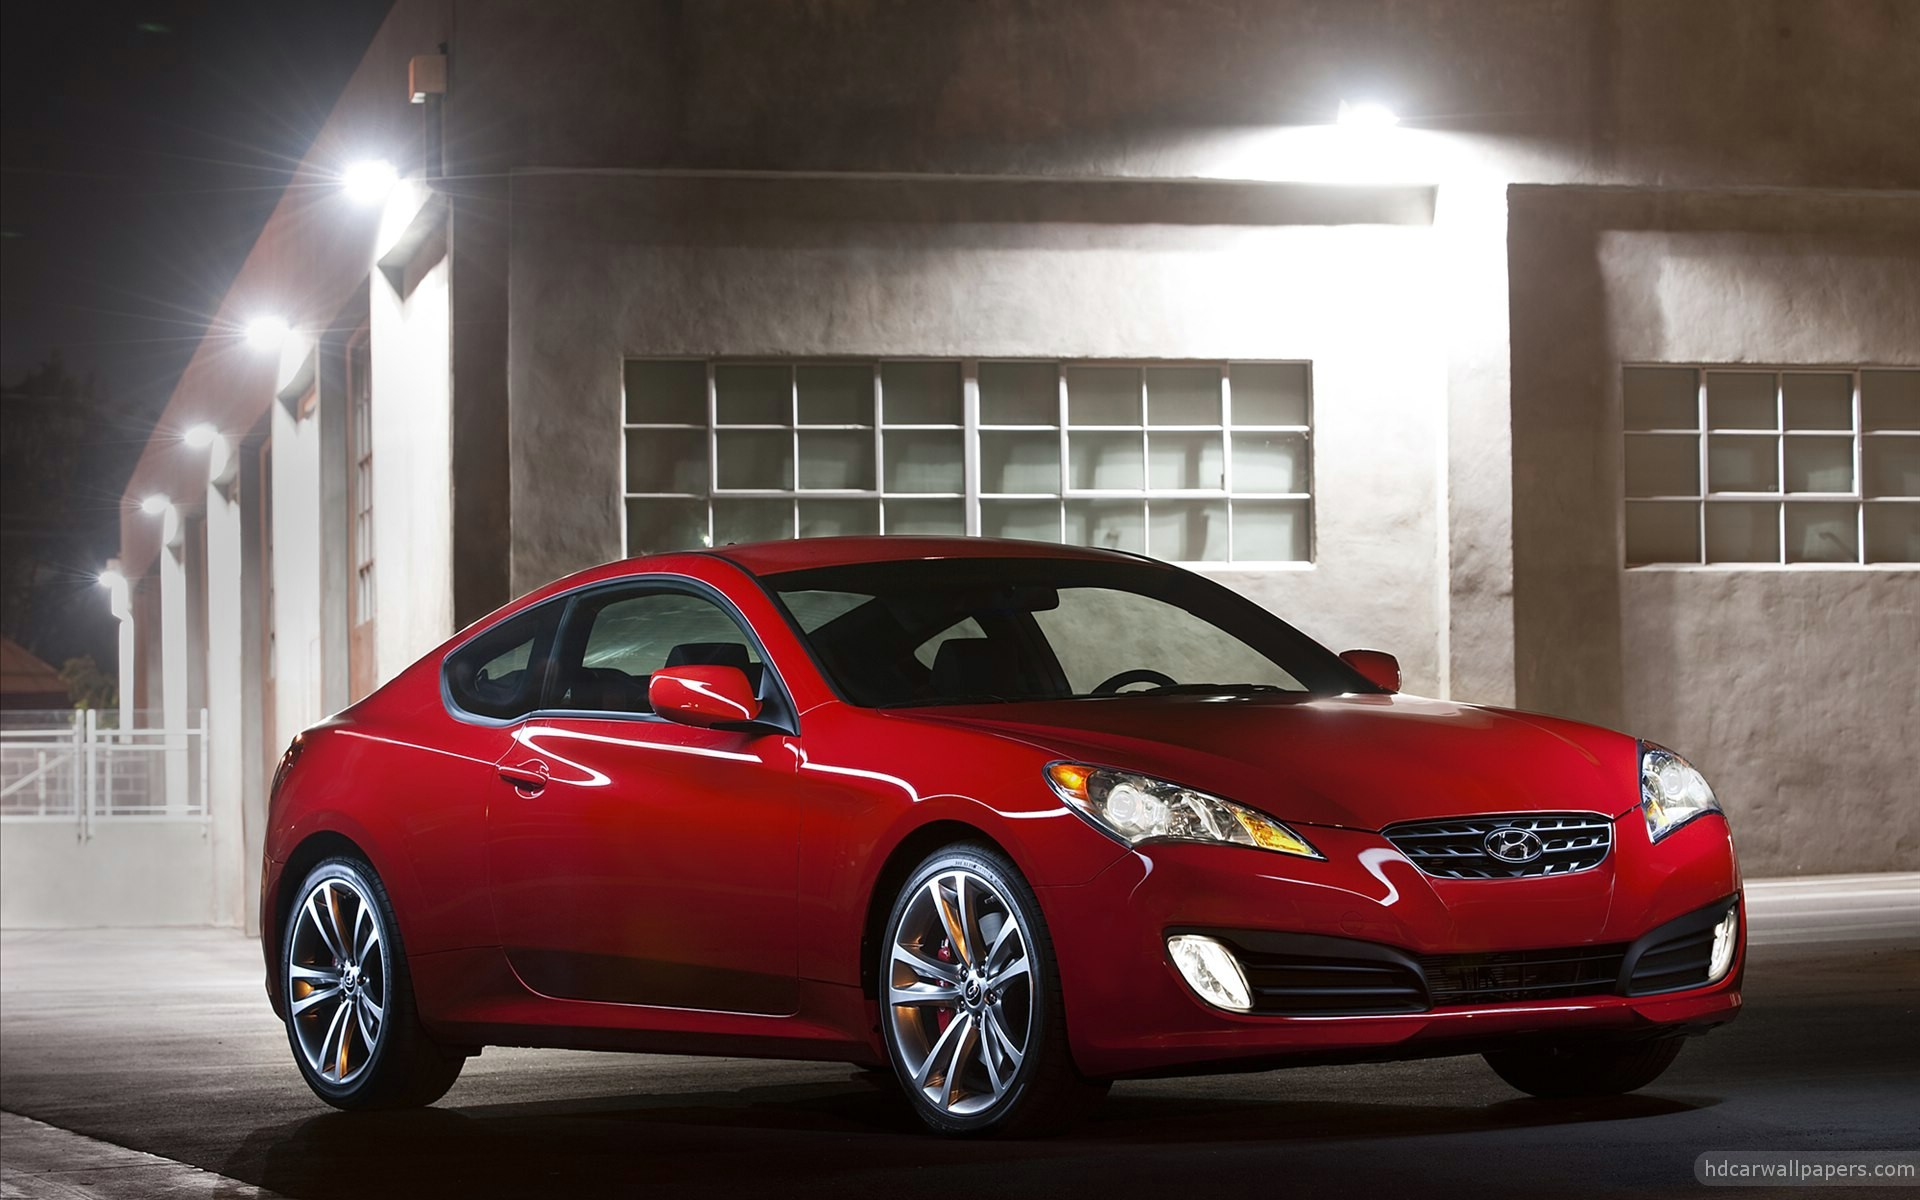 2012 Hyundai Genesis Coupe Wallpaper Hd Car Wallpapers